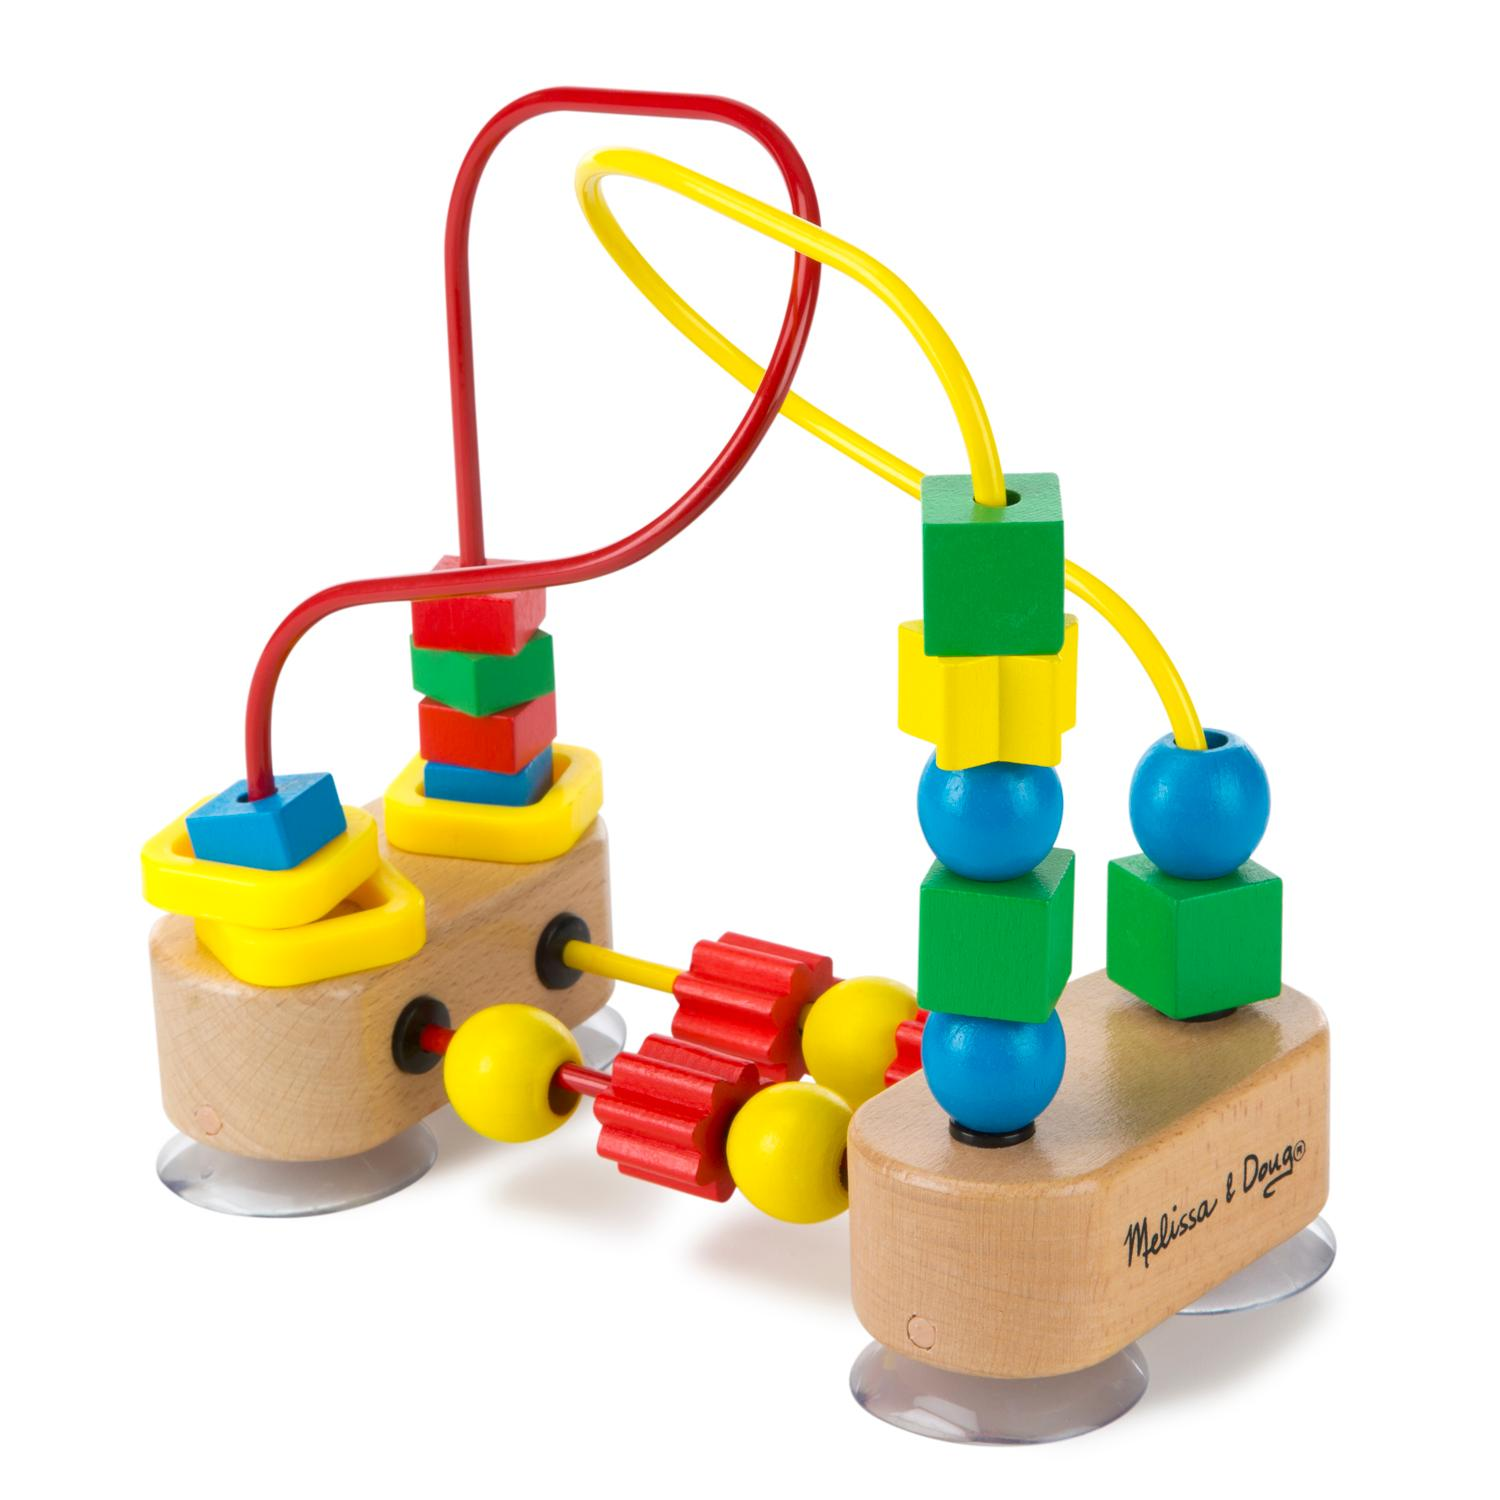 Melissa & Doug First Bead Maze Wooden Educational Toy Melissa